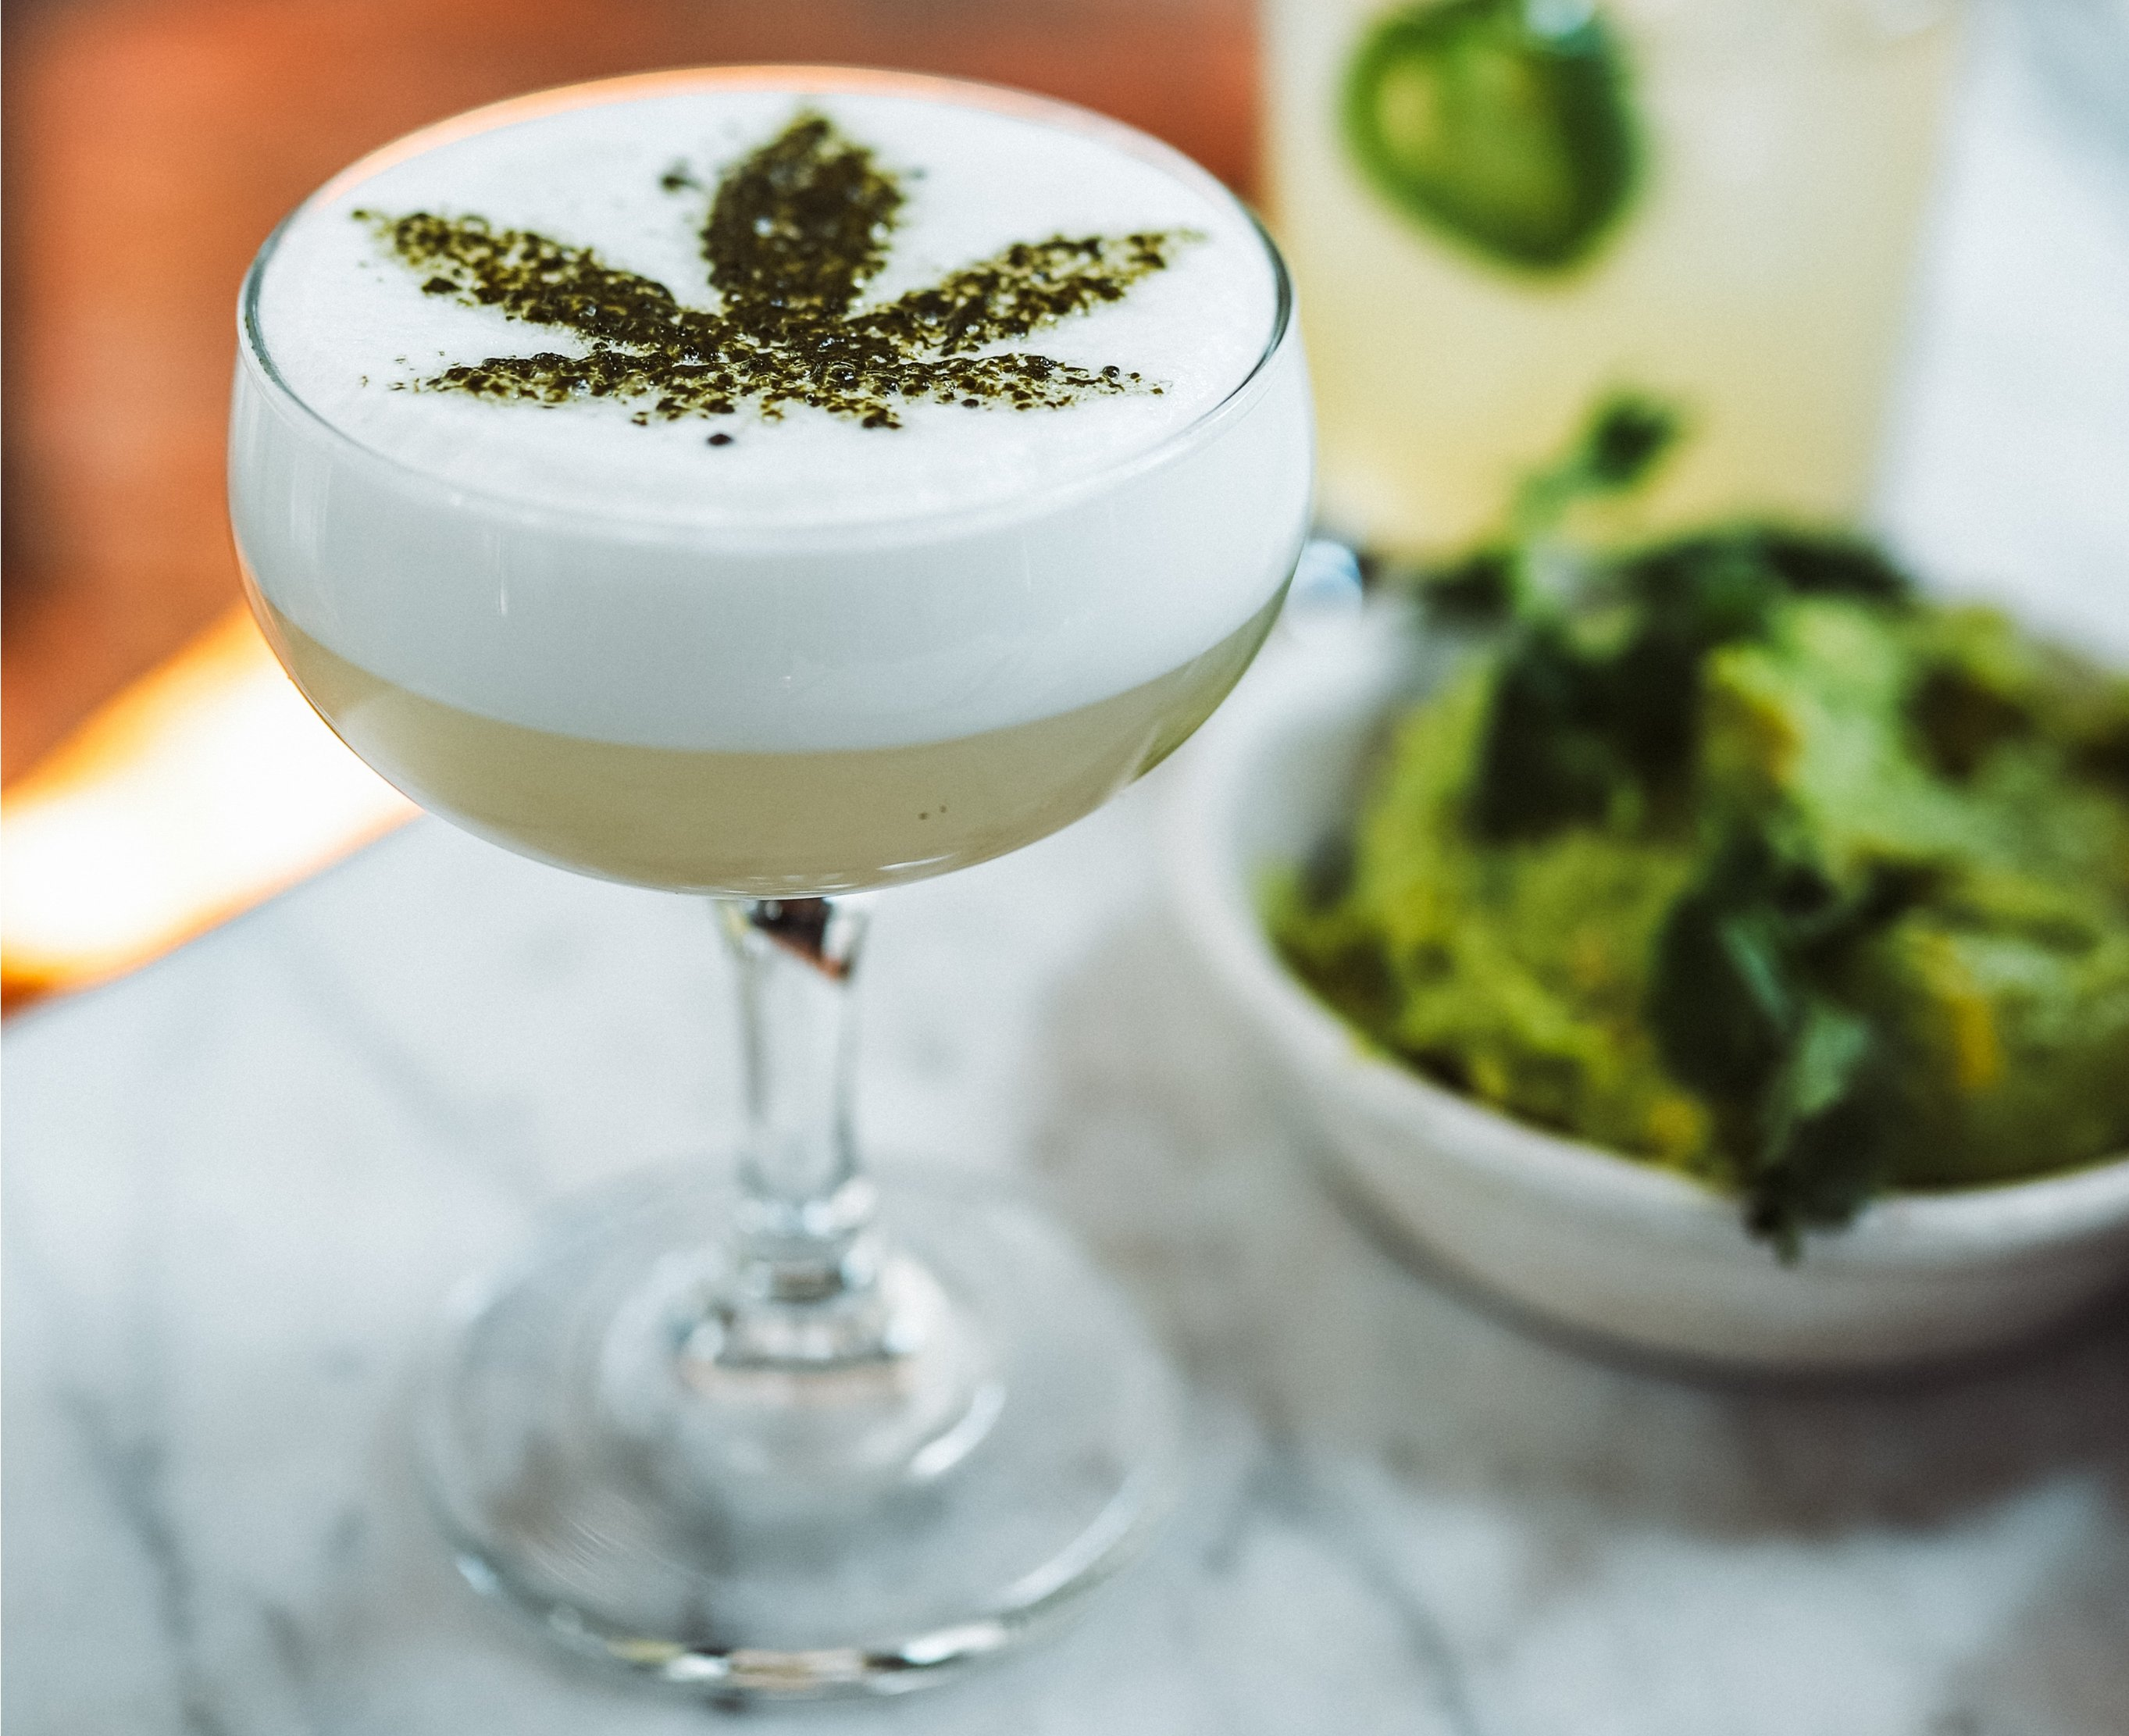 California nixes marijuana- and hemp-infused alcoholic beverages